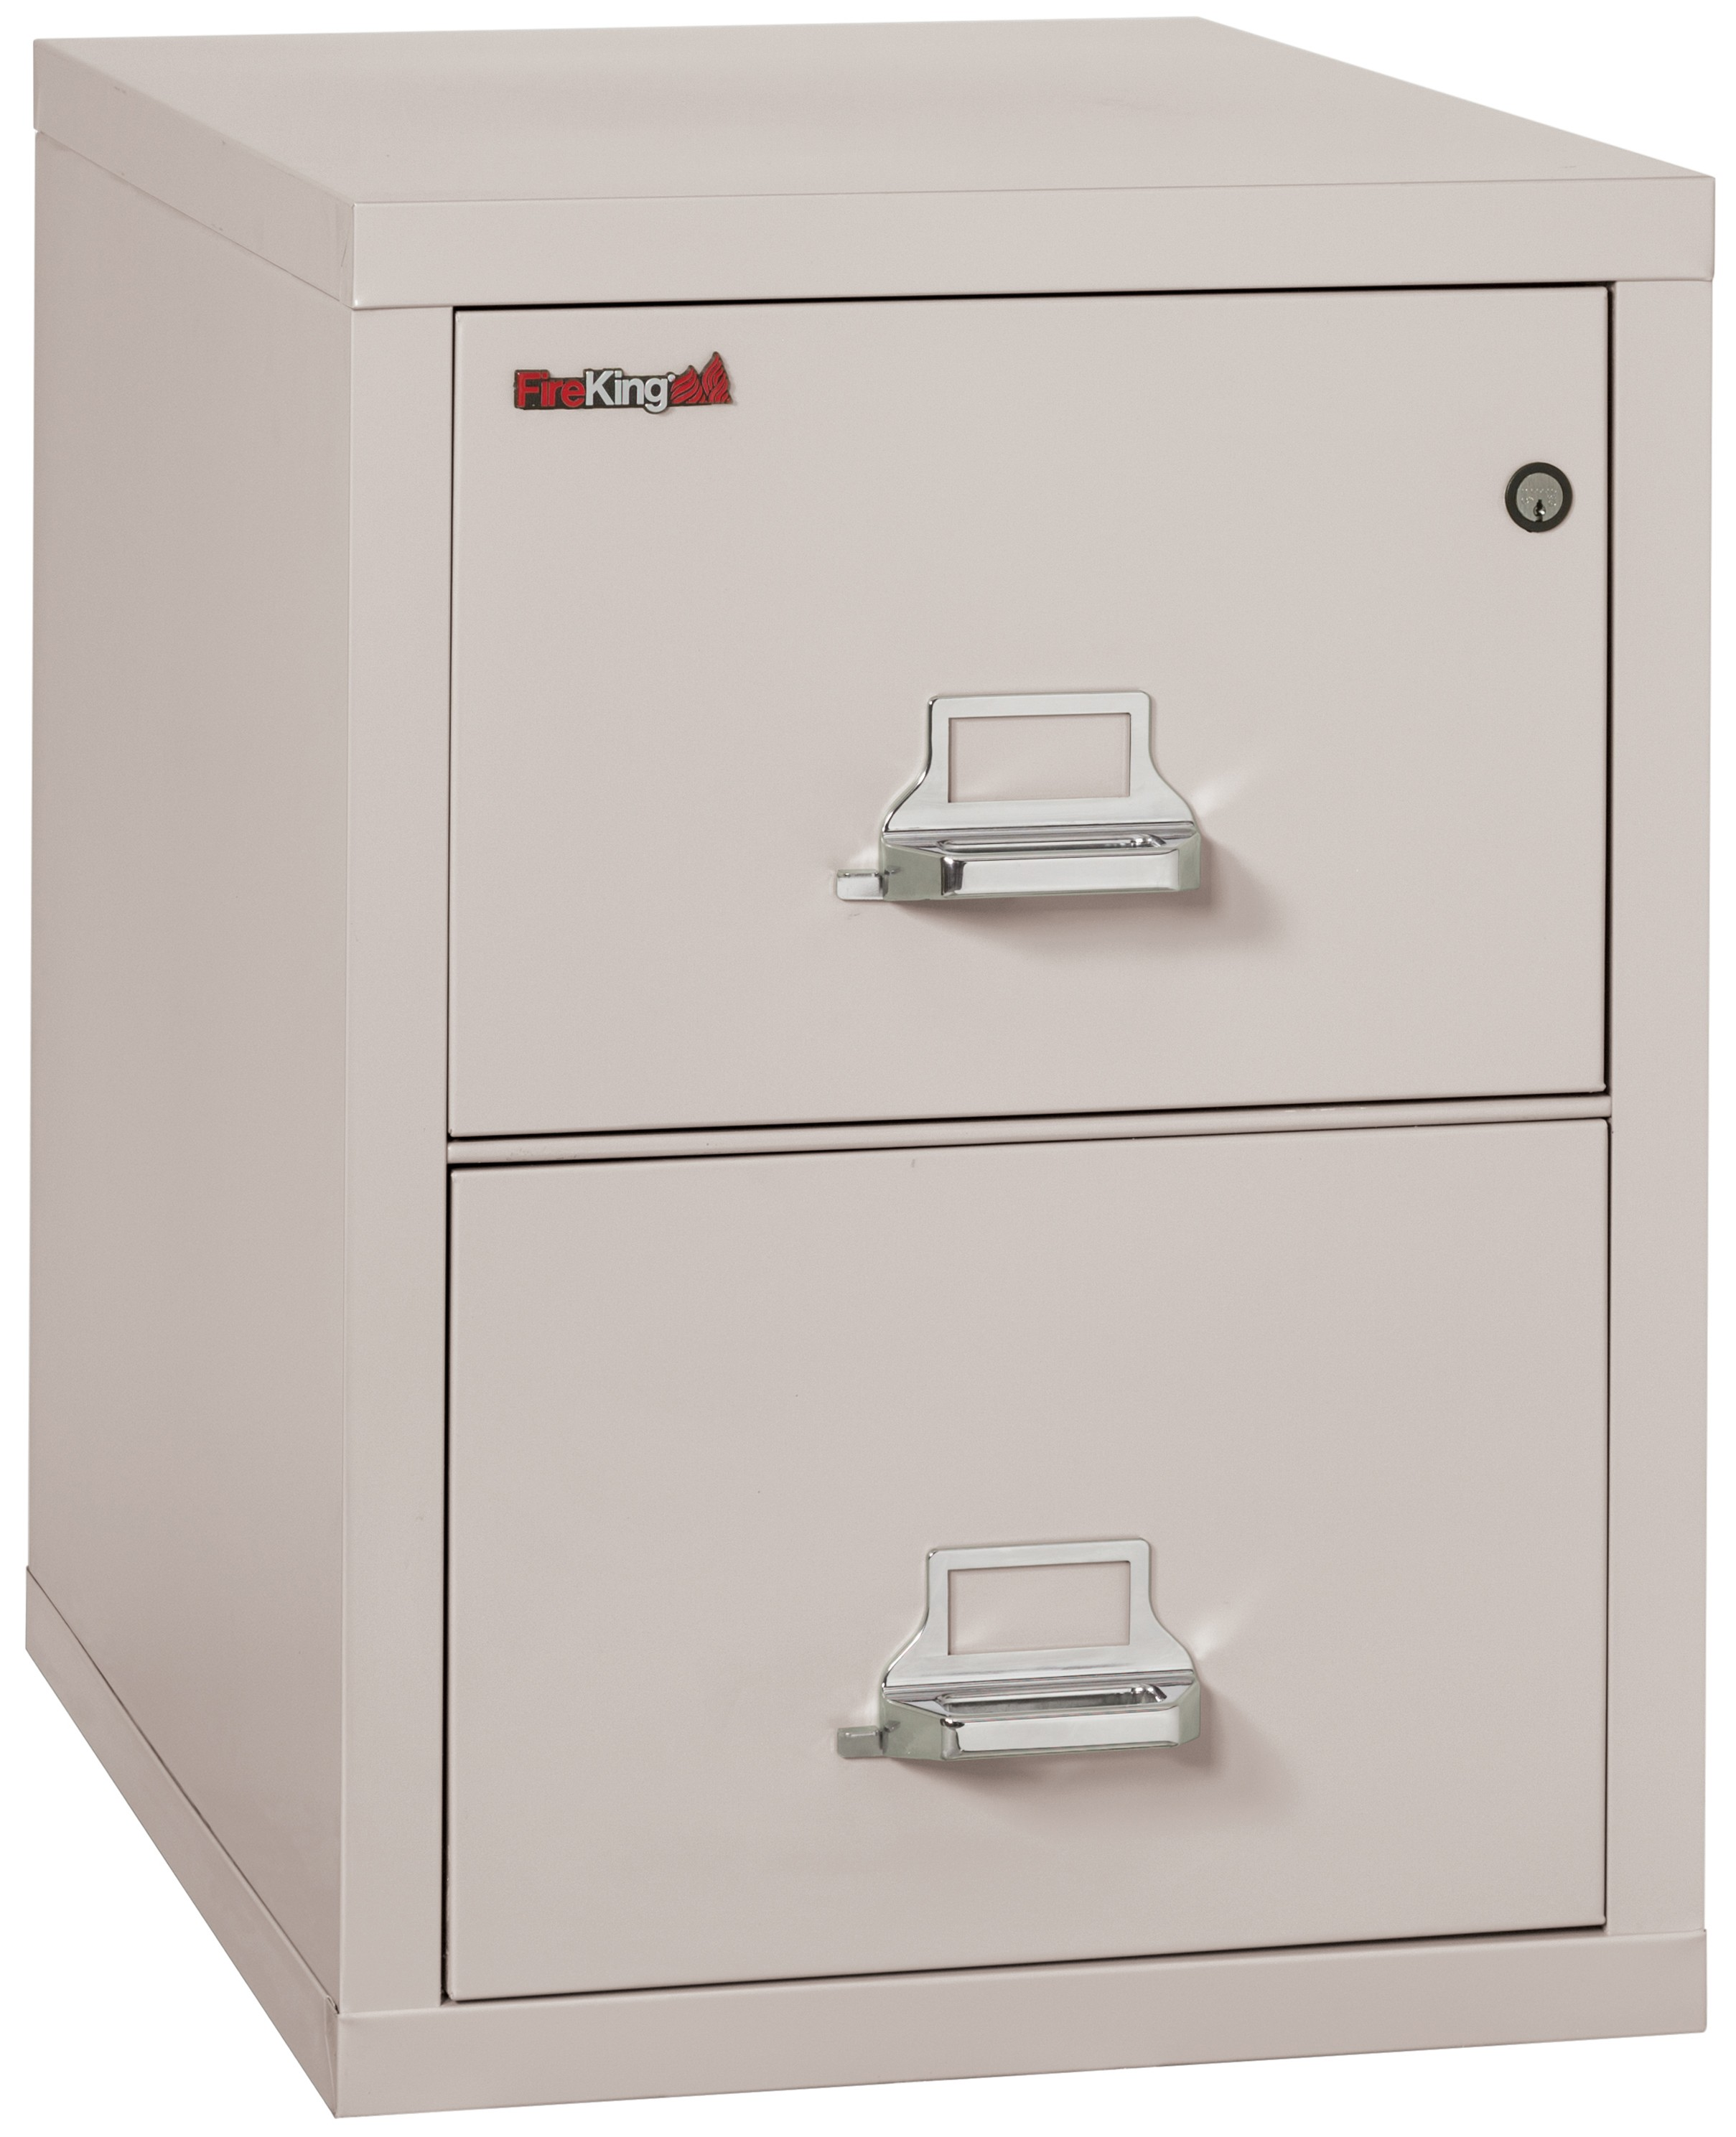 1 Hr Fireproof 2 2131 CPL Industrial Armoires Modern Office Filling Cabinet  Platinum Vertical